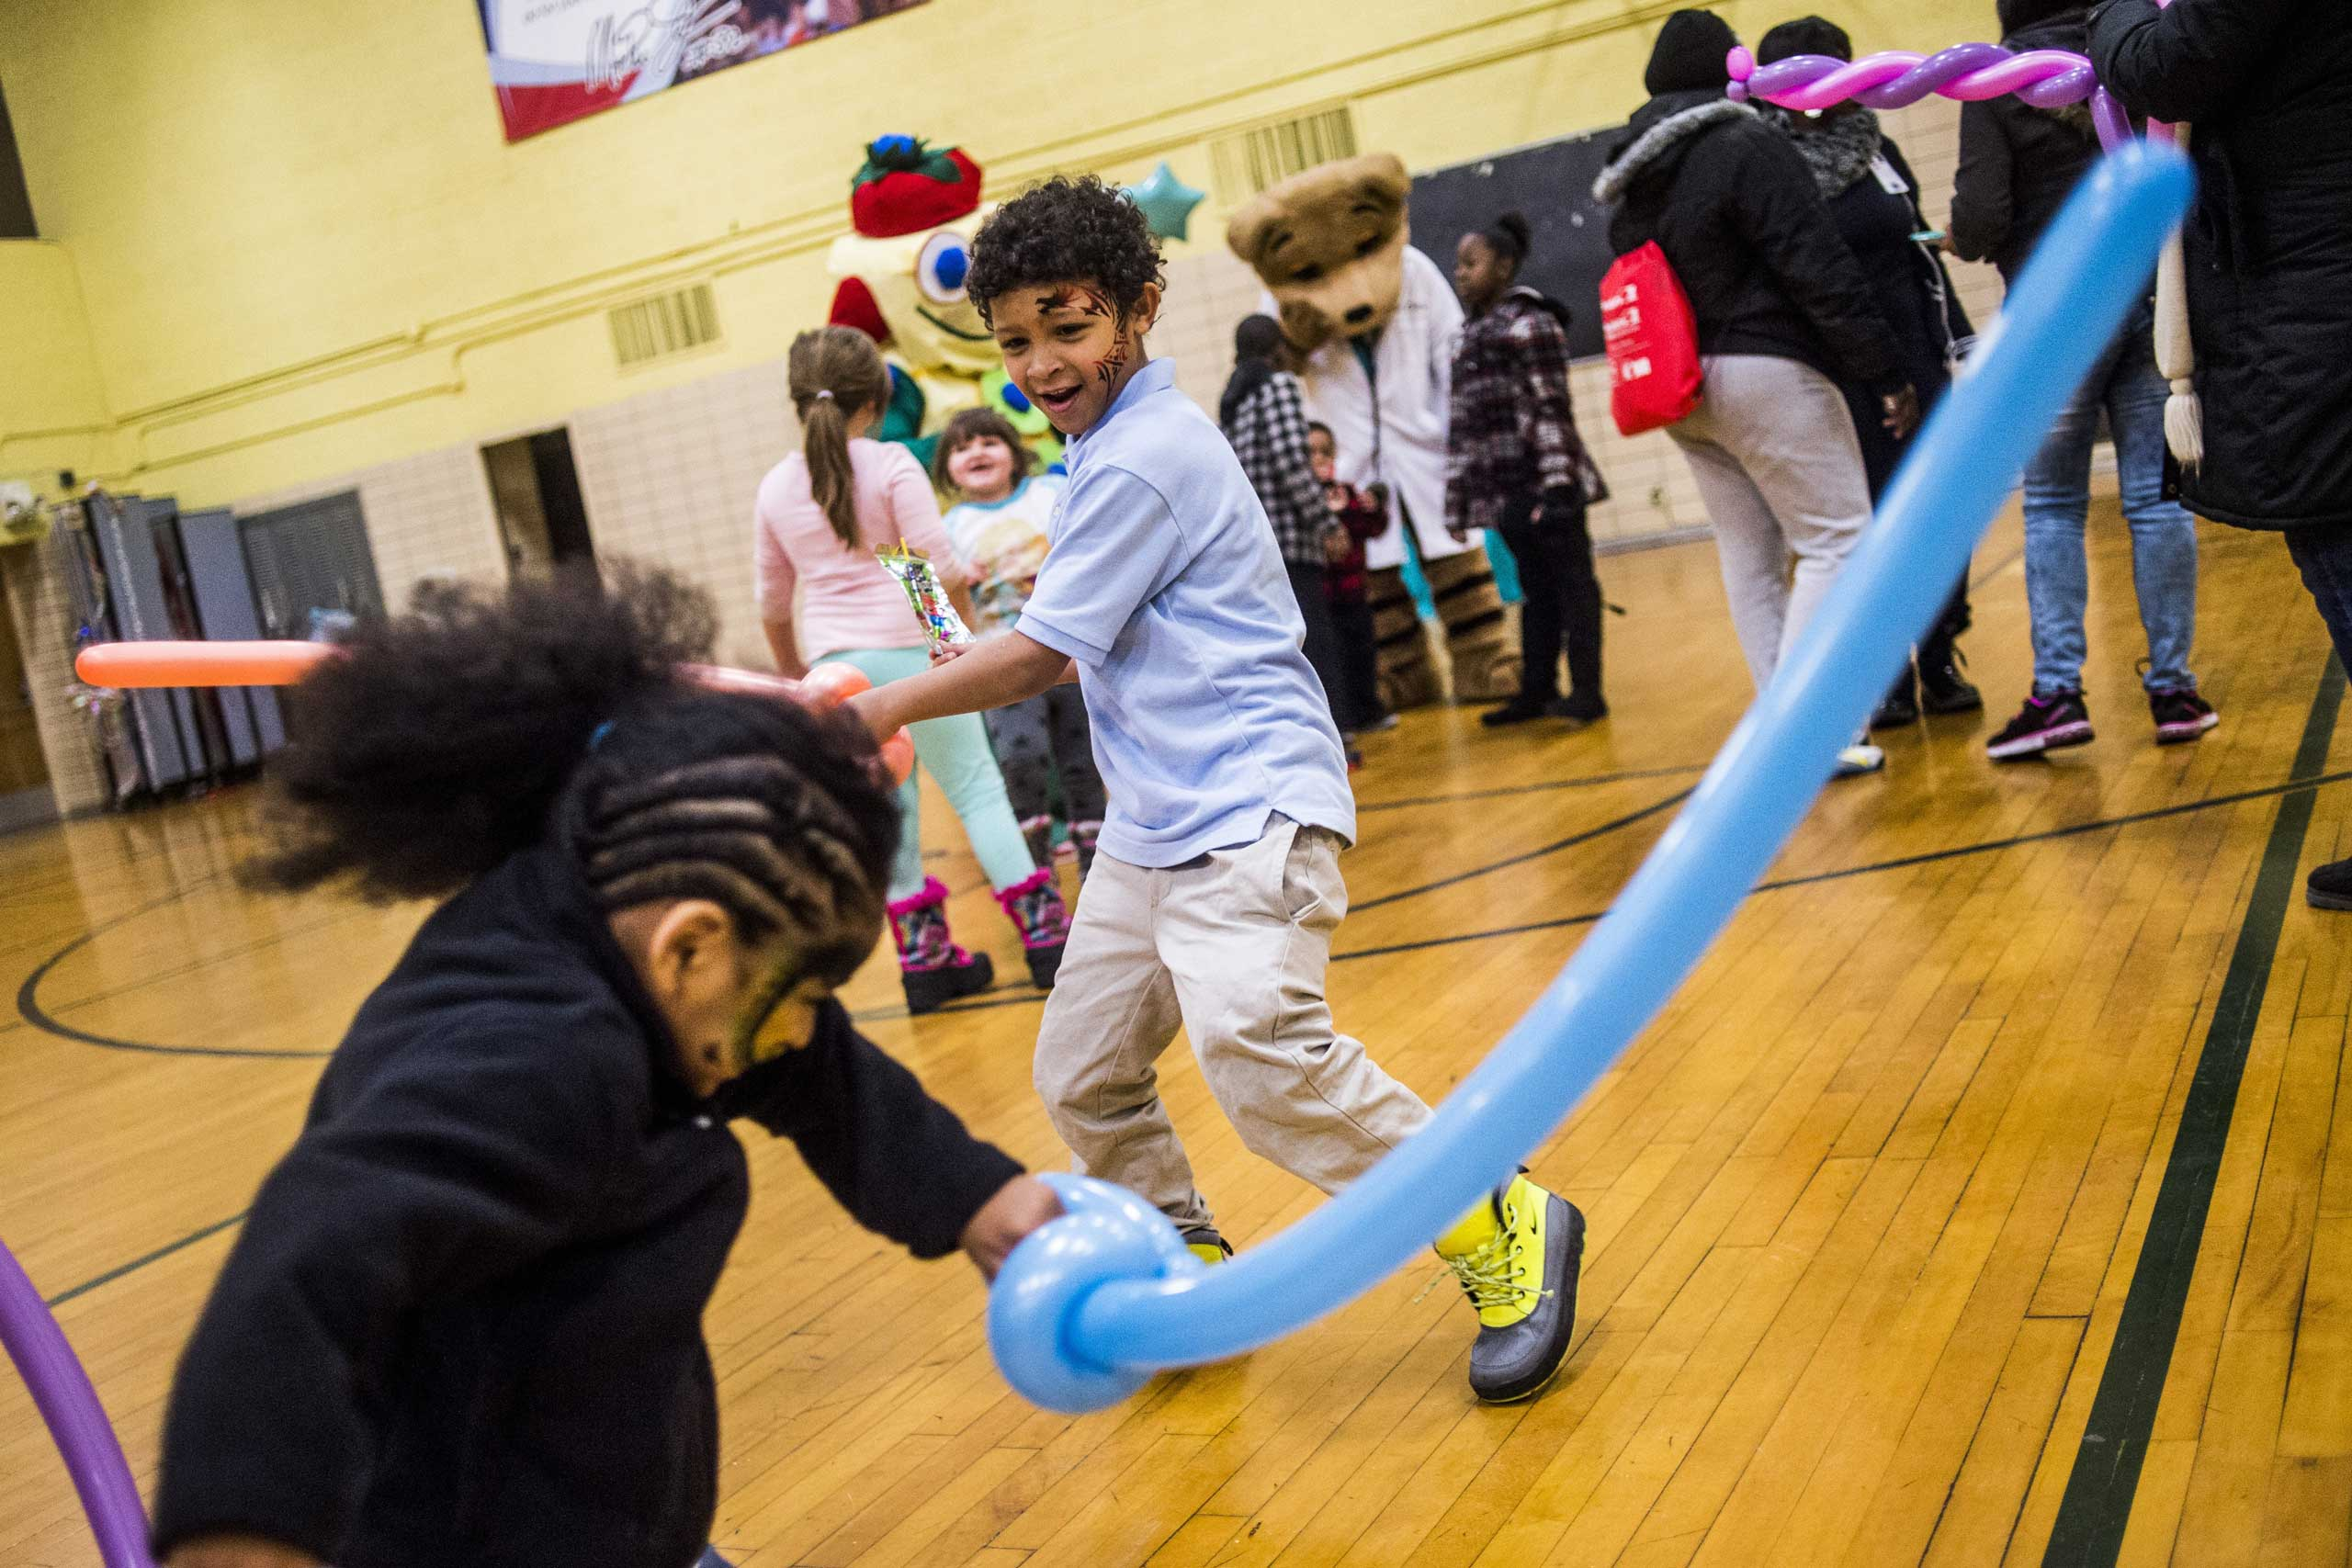 Freeman Elementary second-grader Damari Morales, 7, fights with balloon swords with Apollo Williams, 3, both of Flint. The Flint Community Schools, the Genesee County Health Department and Molina Healthcare held a family fun night to get children  tested for lead levels in their blood at the school in Flint, Mich., Jan. 12, 2016.